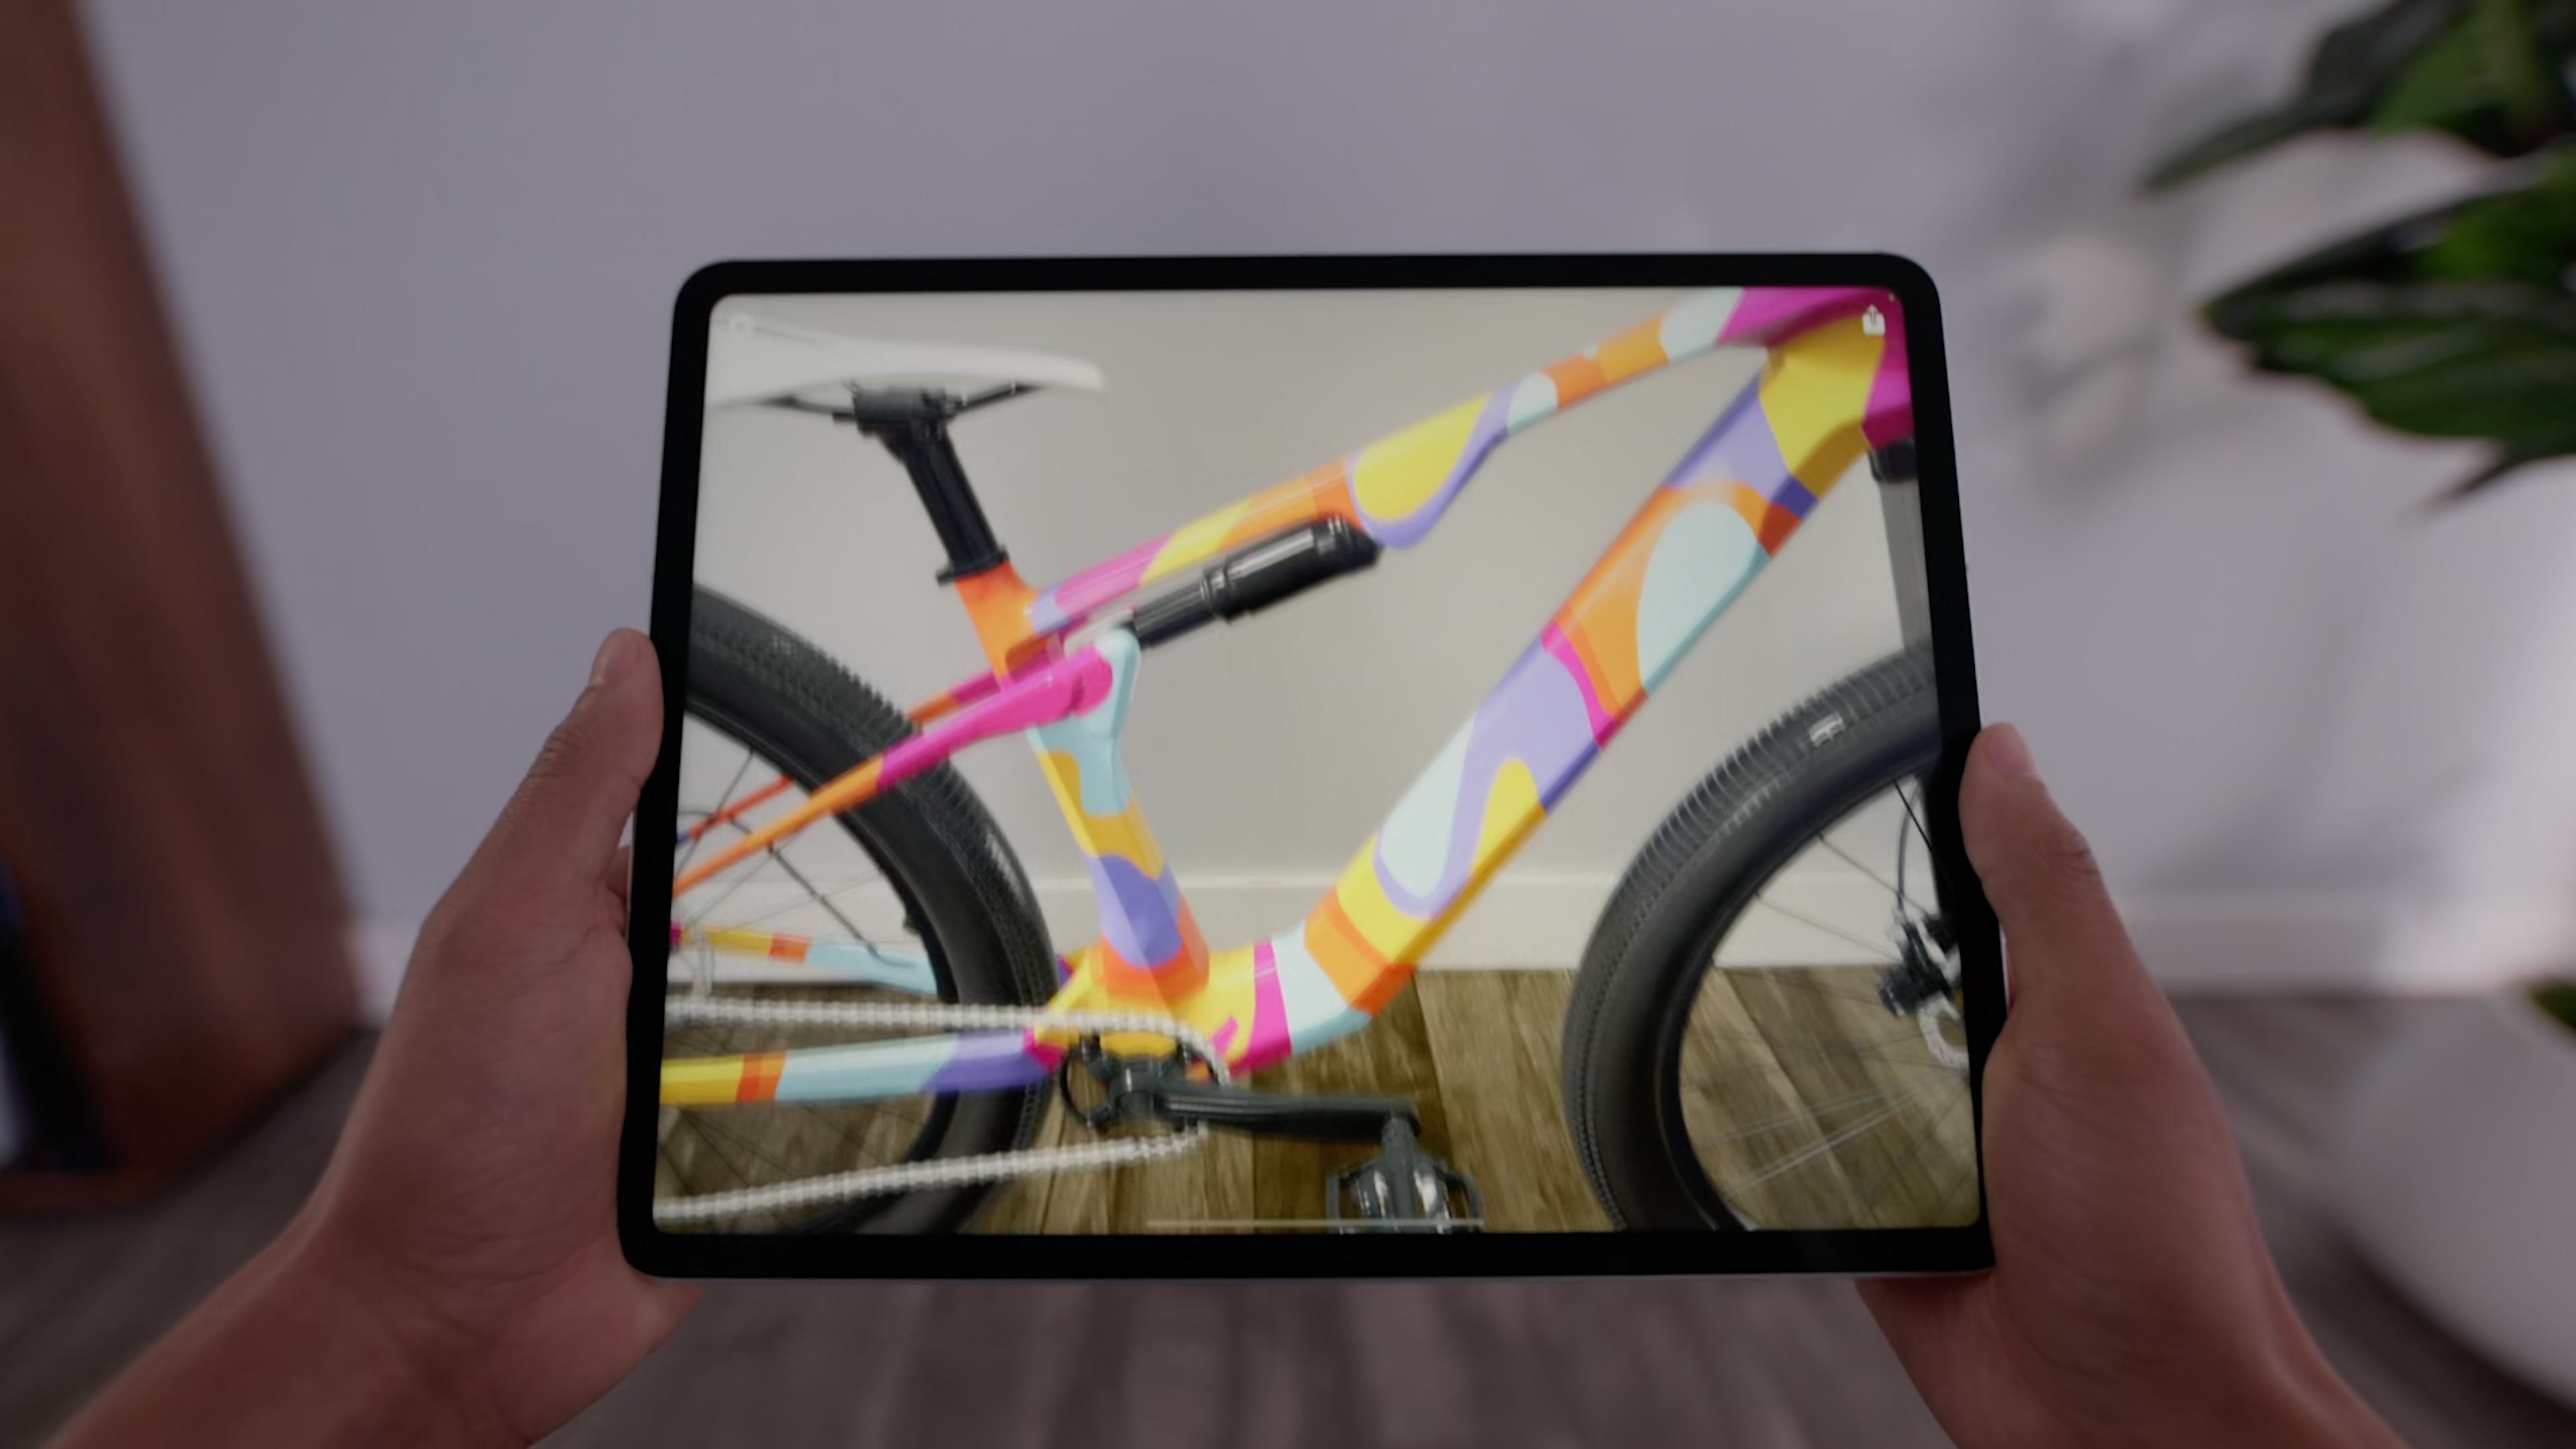 iPad Pro: Apple's new M1 tablet is pretty much becoming a Mac